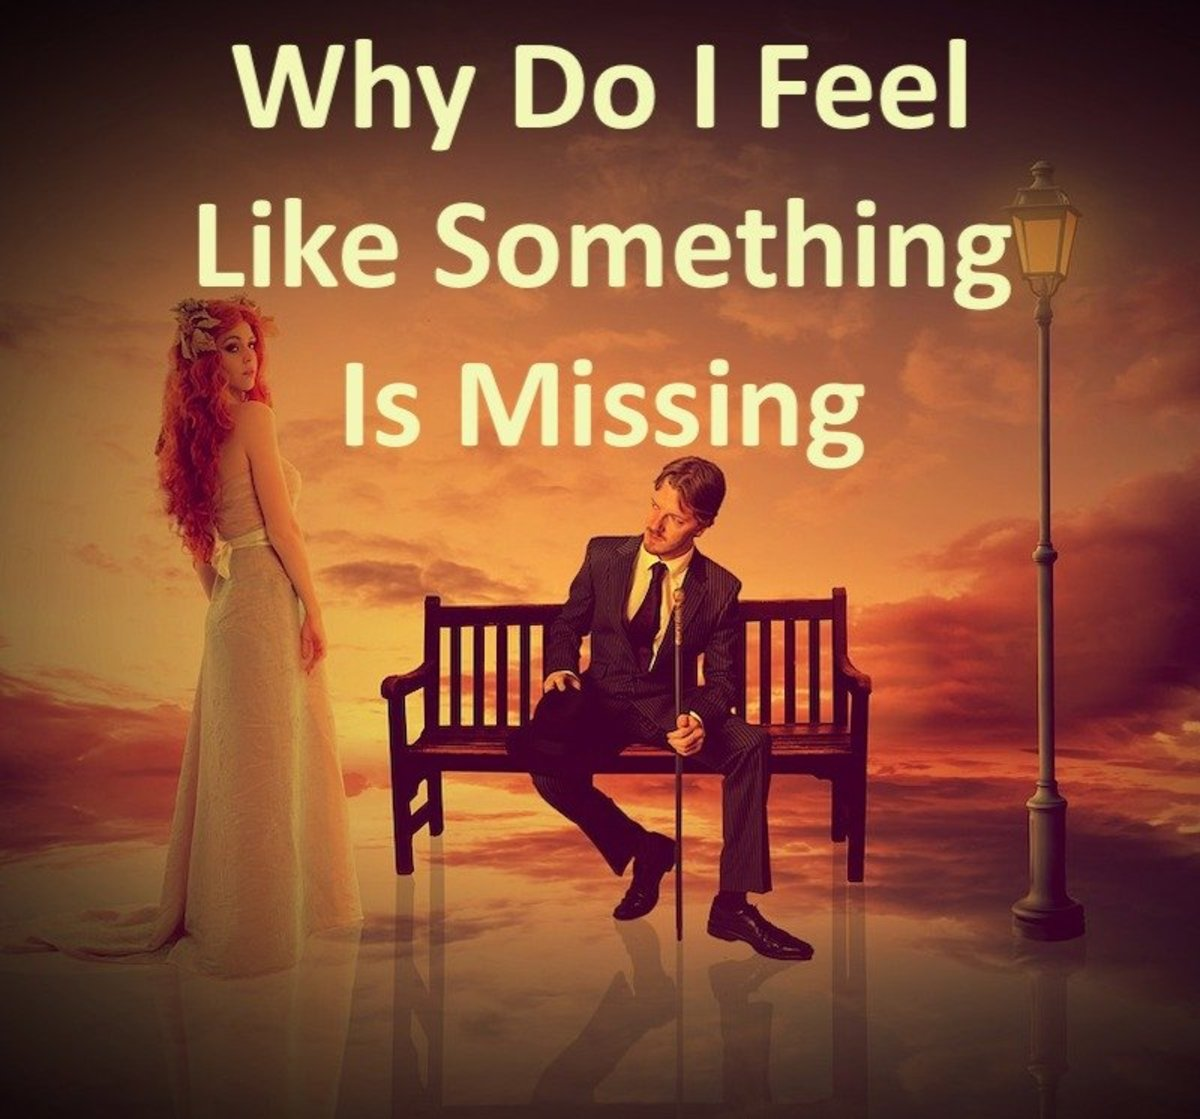 somethings-missing-in-our-relationship